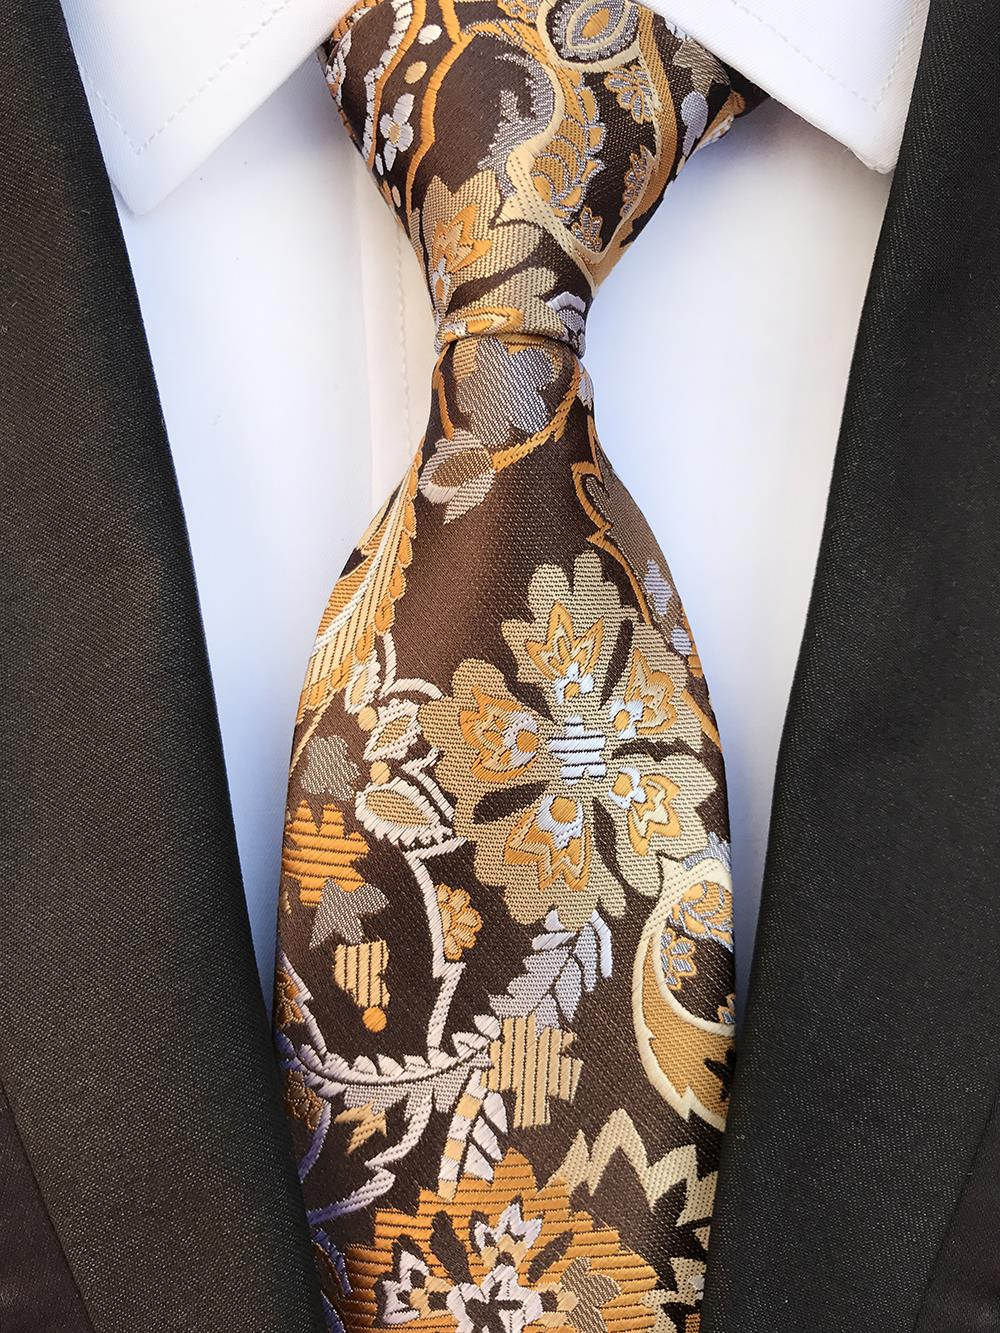 New Arrival Fashion Floral Brown Ties Jacquard Woven Ties 100% Silk Necktie Ties for Mens Business Wedding Party Gravatas Ties